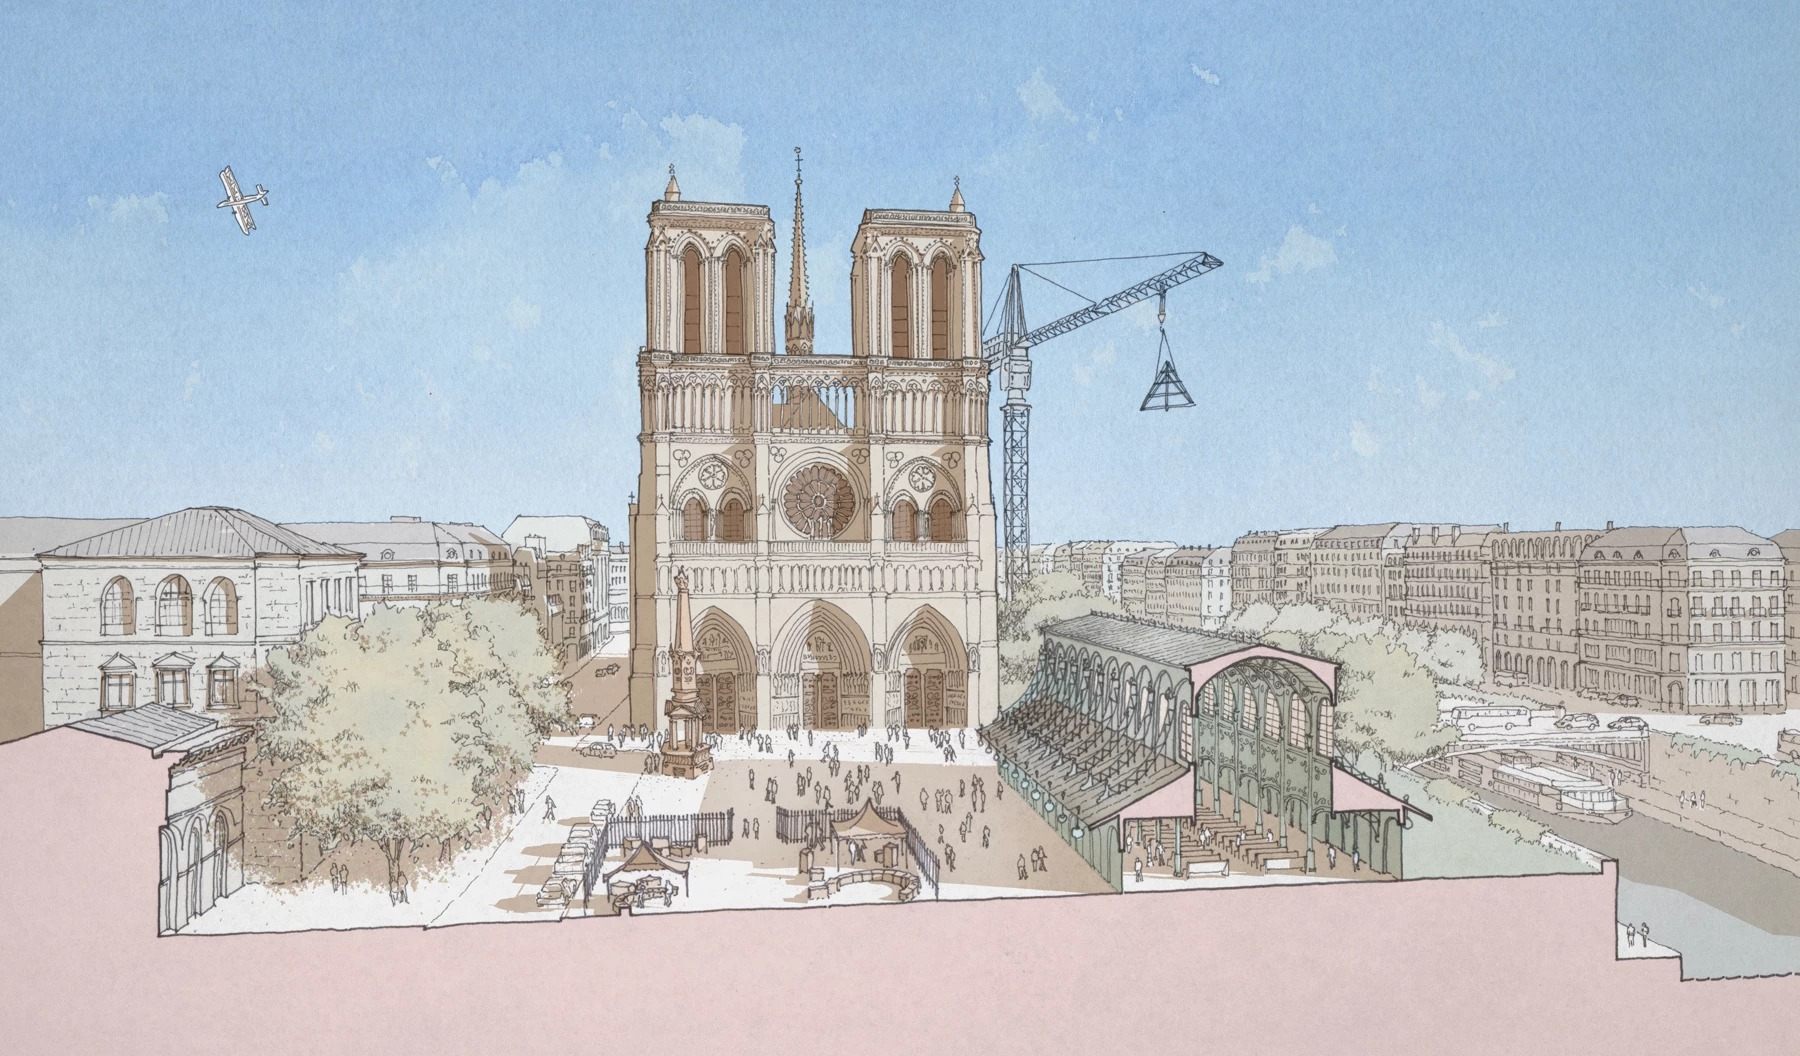 Atlanta architects pitch vision for restored Notre Dame Cathedral